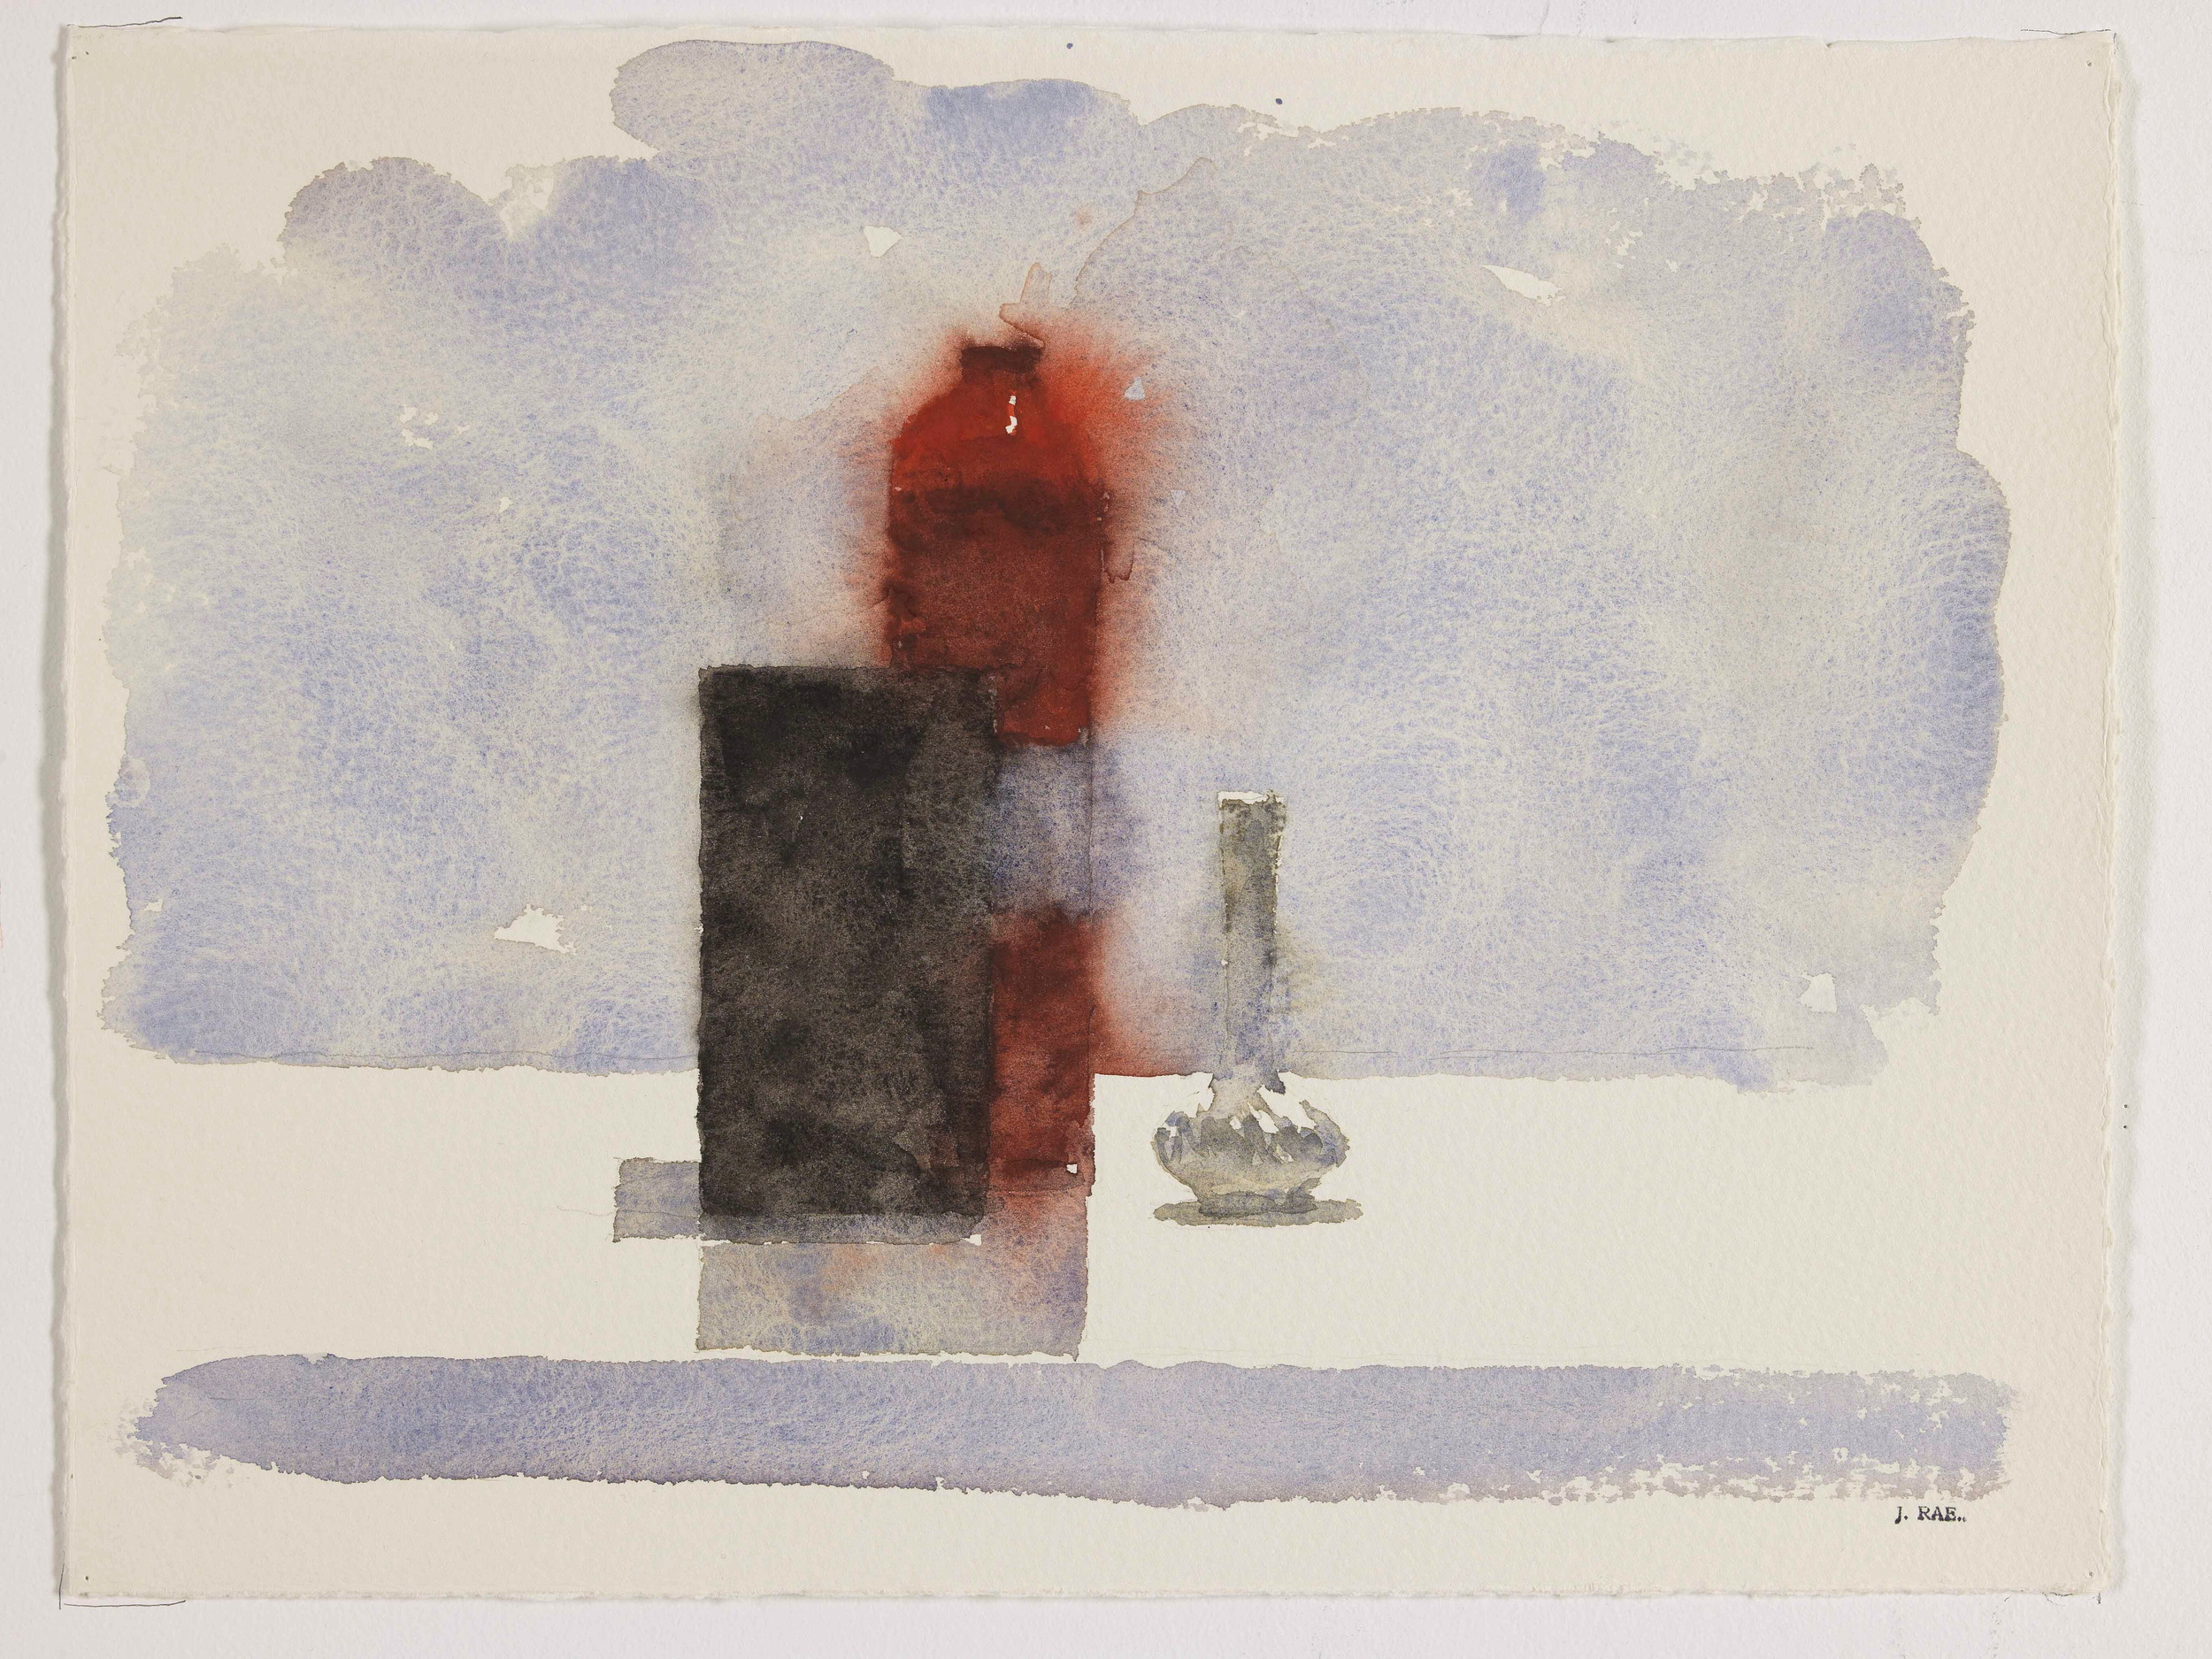 WCSL114, 2010, water colour on paper, 38 x 29cm.